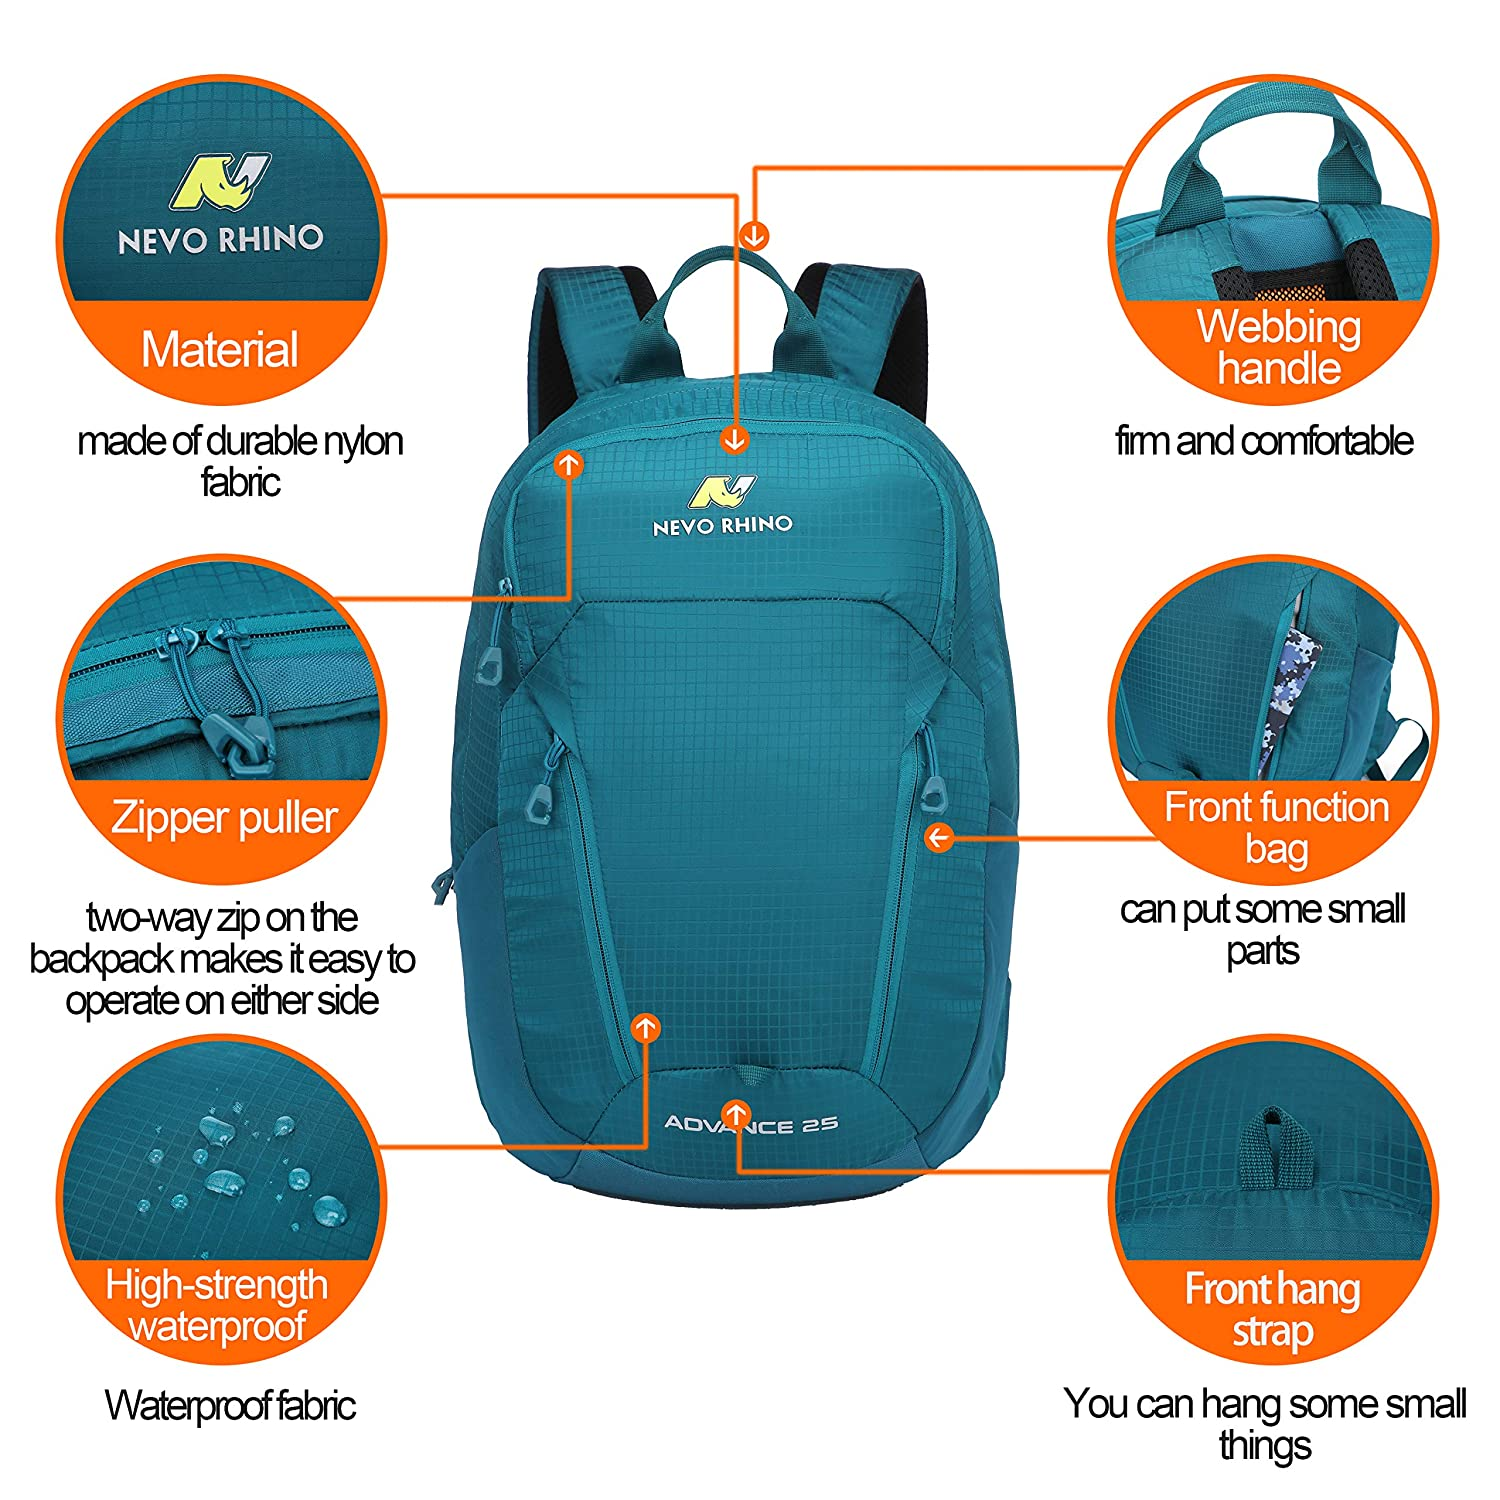 N NEVO RHINO 25L Hiking Backpack, Durable Nylon Outdoor Sports Ultralight Daypack with Internal Frame, Lightweight High-Performance Waterproof Backpack for Backpacking, Hiking, Camping, Traveling